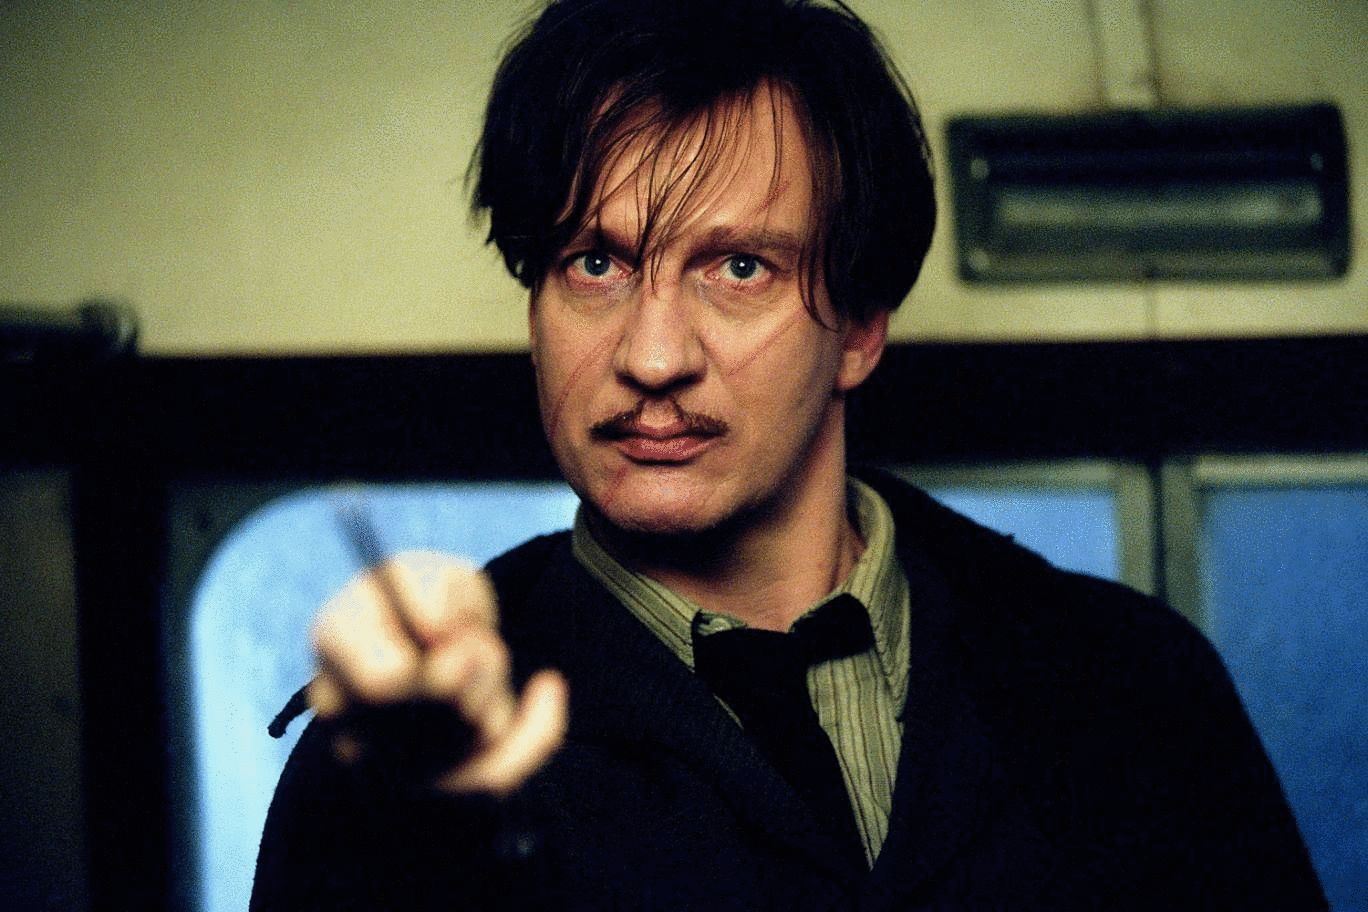 Harry Potter, Lupin